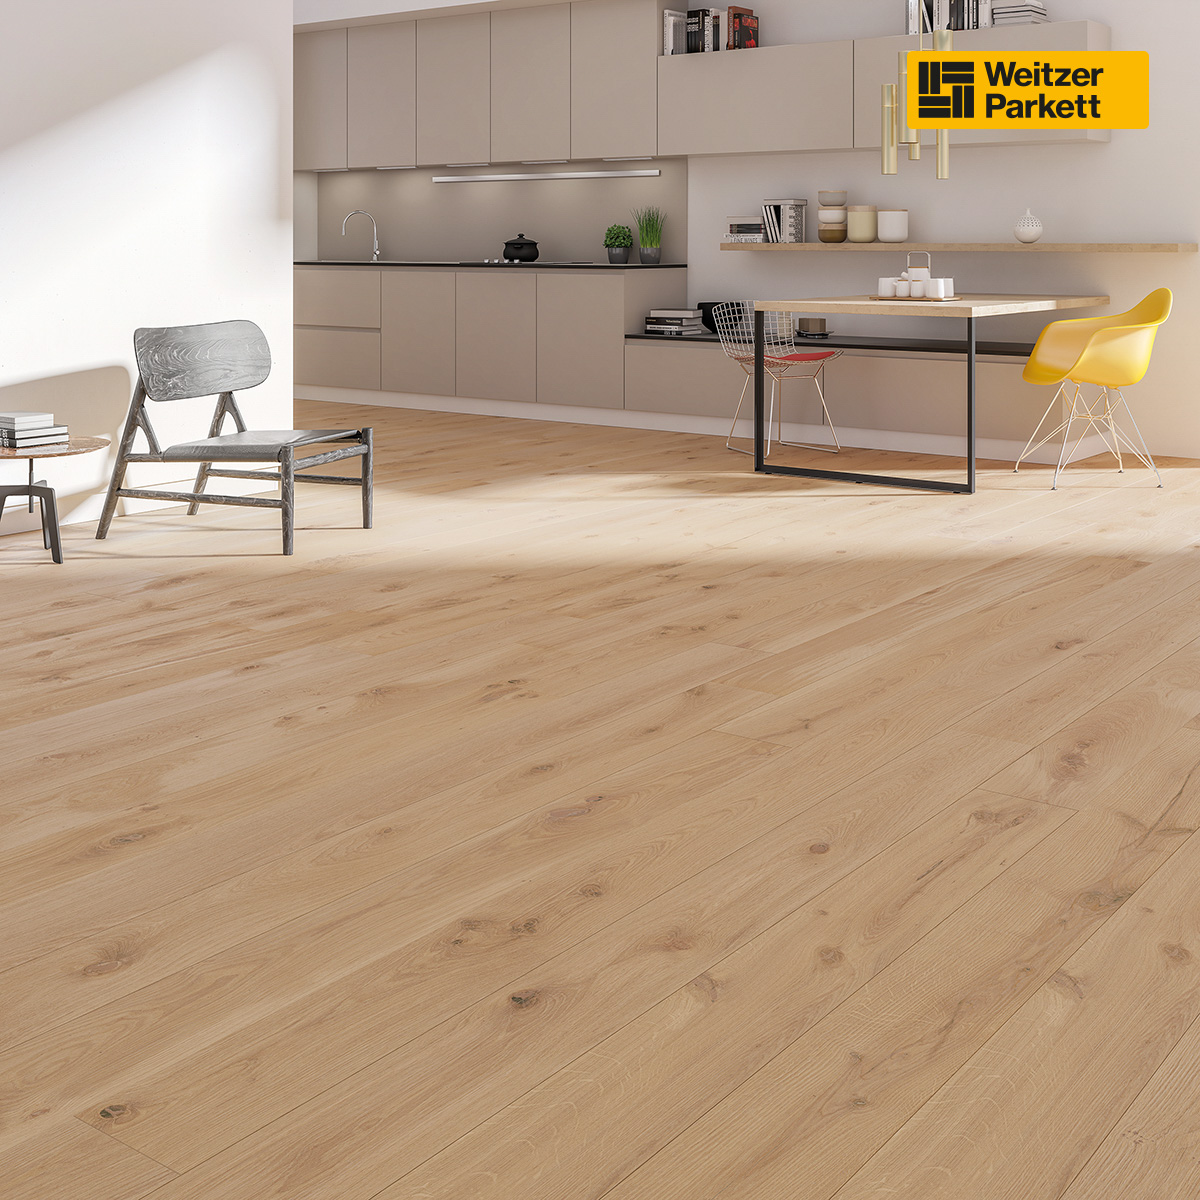 Plank-Appearance_WP_Charisma_EB_OAK_Kaschmir_wild_bevelled_brushed_kitchen.jpg